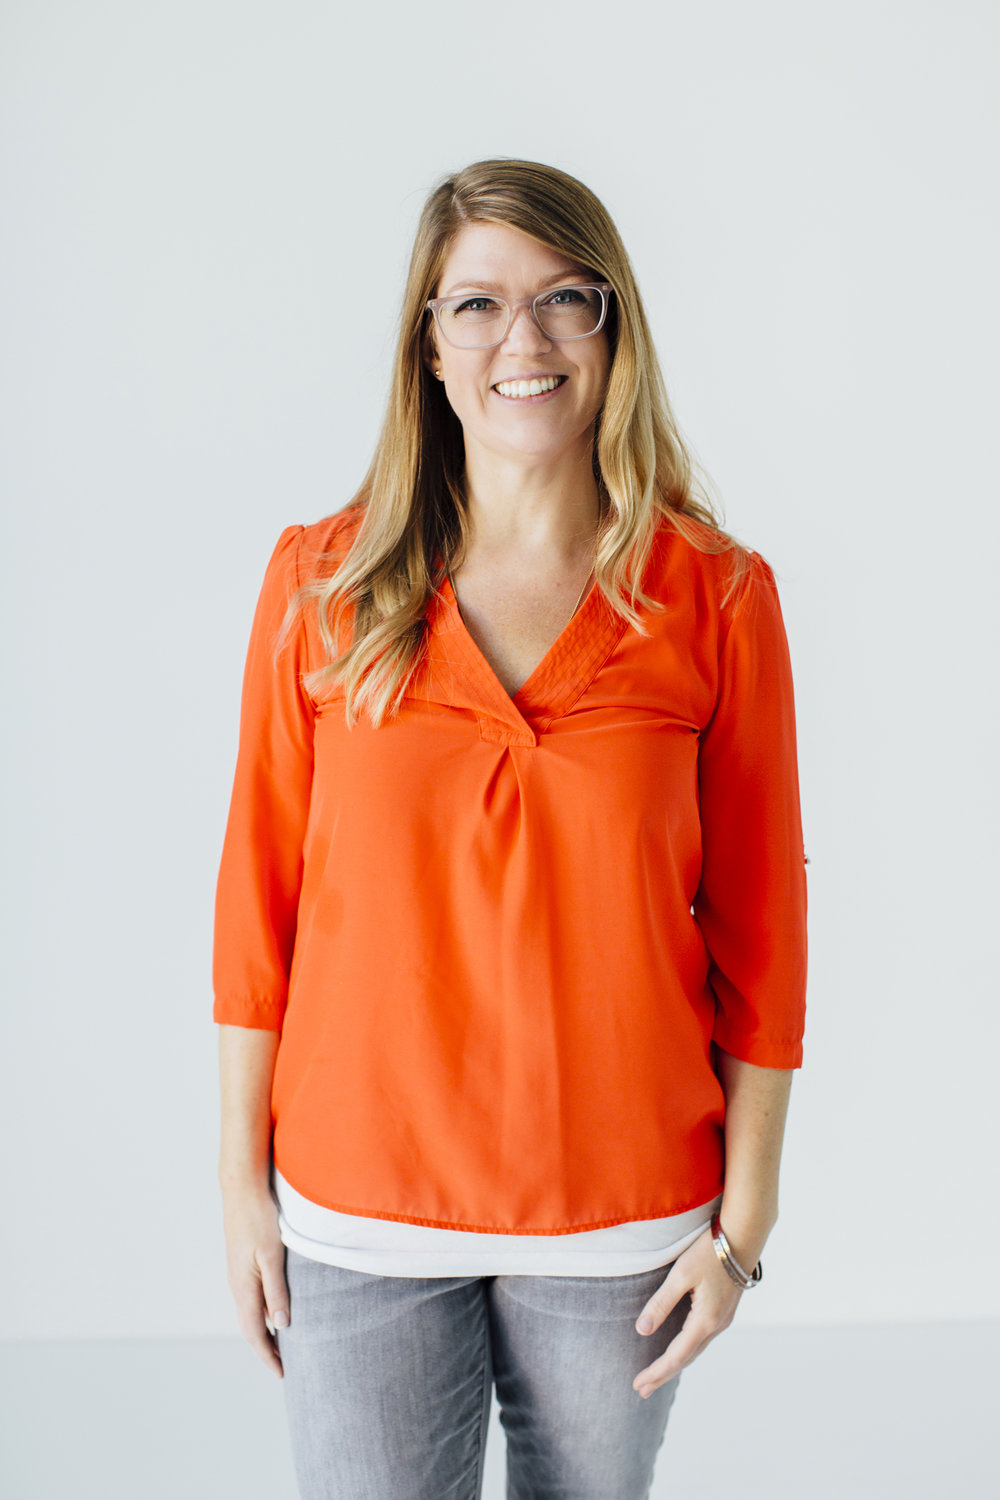 MEMBER SPOTLIGHT  - Mary Bigham is the co-founder of Dish Works, one of the top culinary content agencies in the United States! Dish Works uses SUPPLY to create videos, photograph recipes + have all company meetings.  Mary brings enthusiasim + energy to the SUPPLY community and fills our building with sweet smells + delicious food to try.  Every member seems to show up on days that Dish Works is cooking up something.